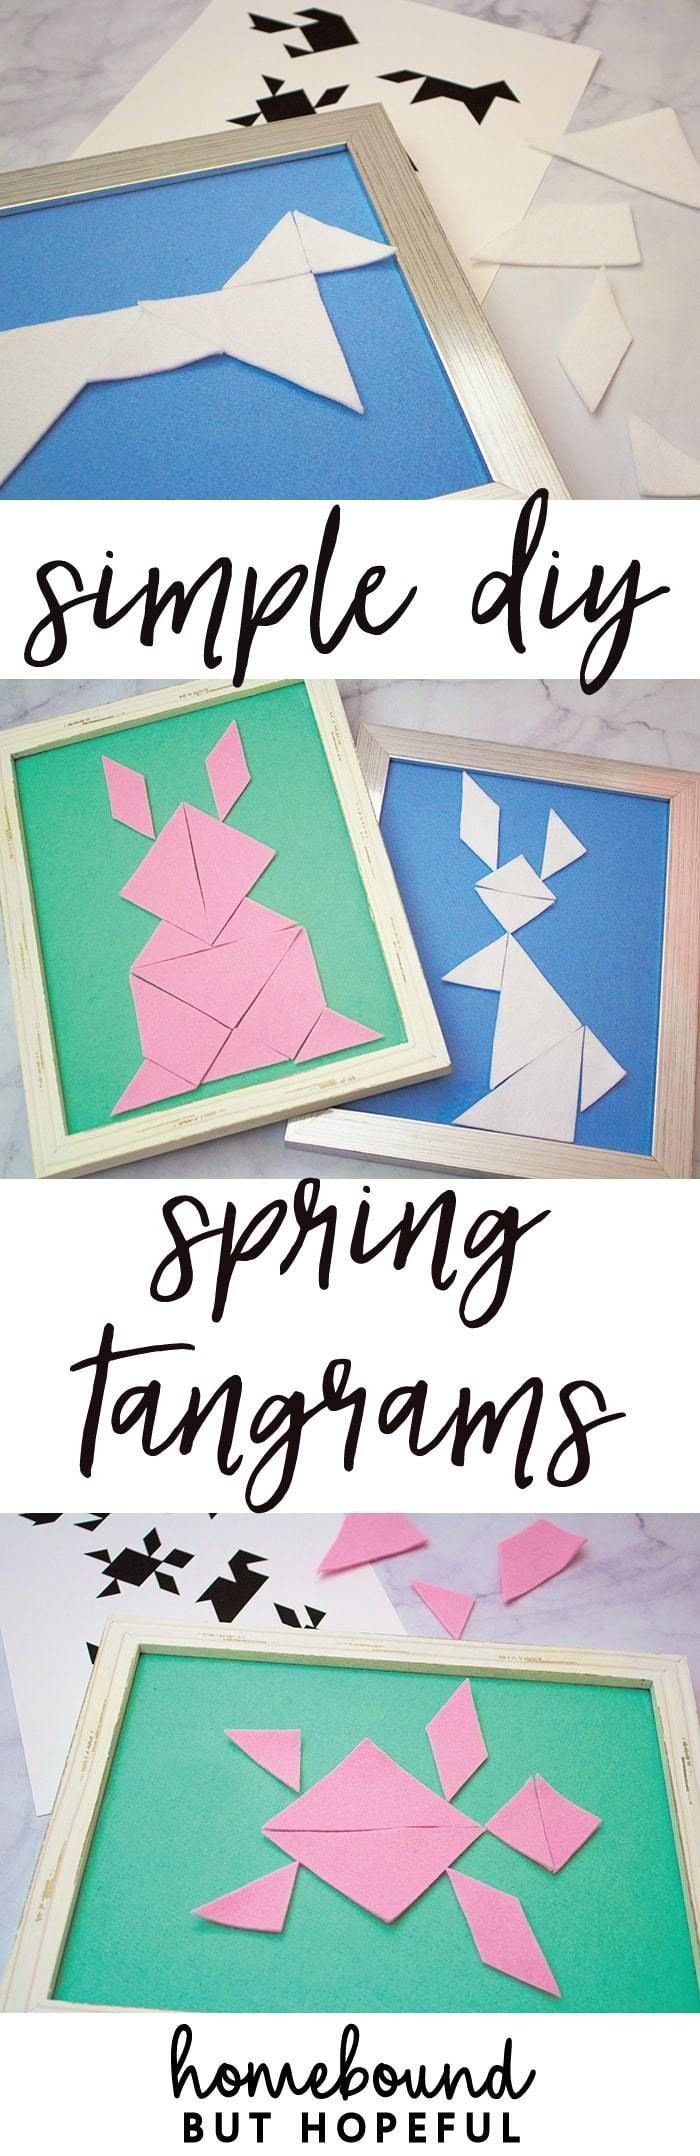 142 best 5th grade images on Pinterest | Activities, School and Beds